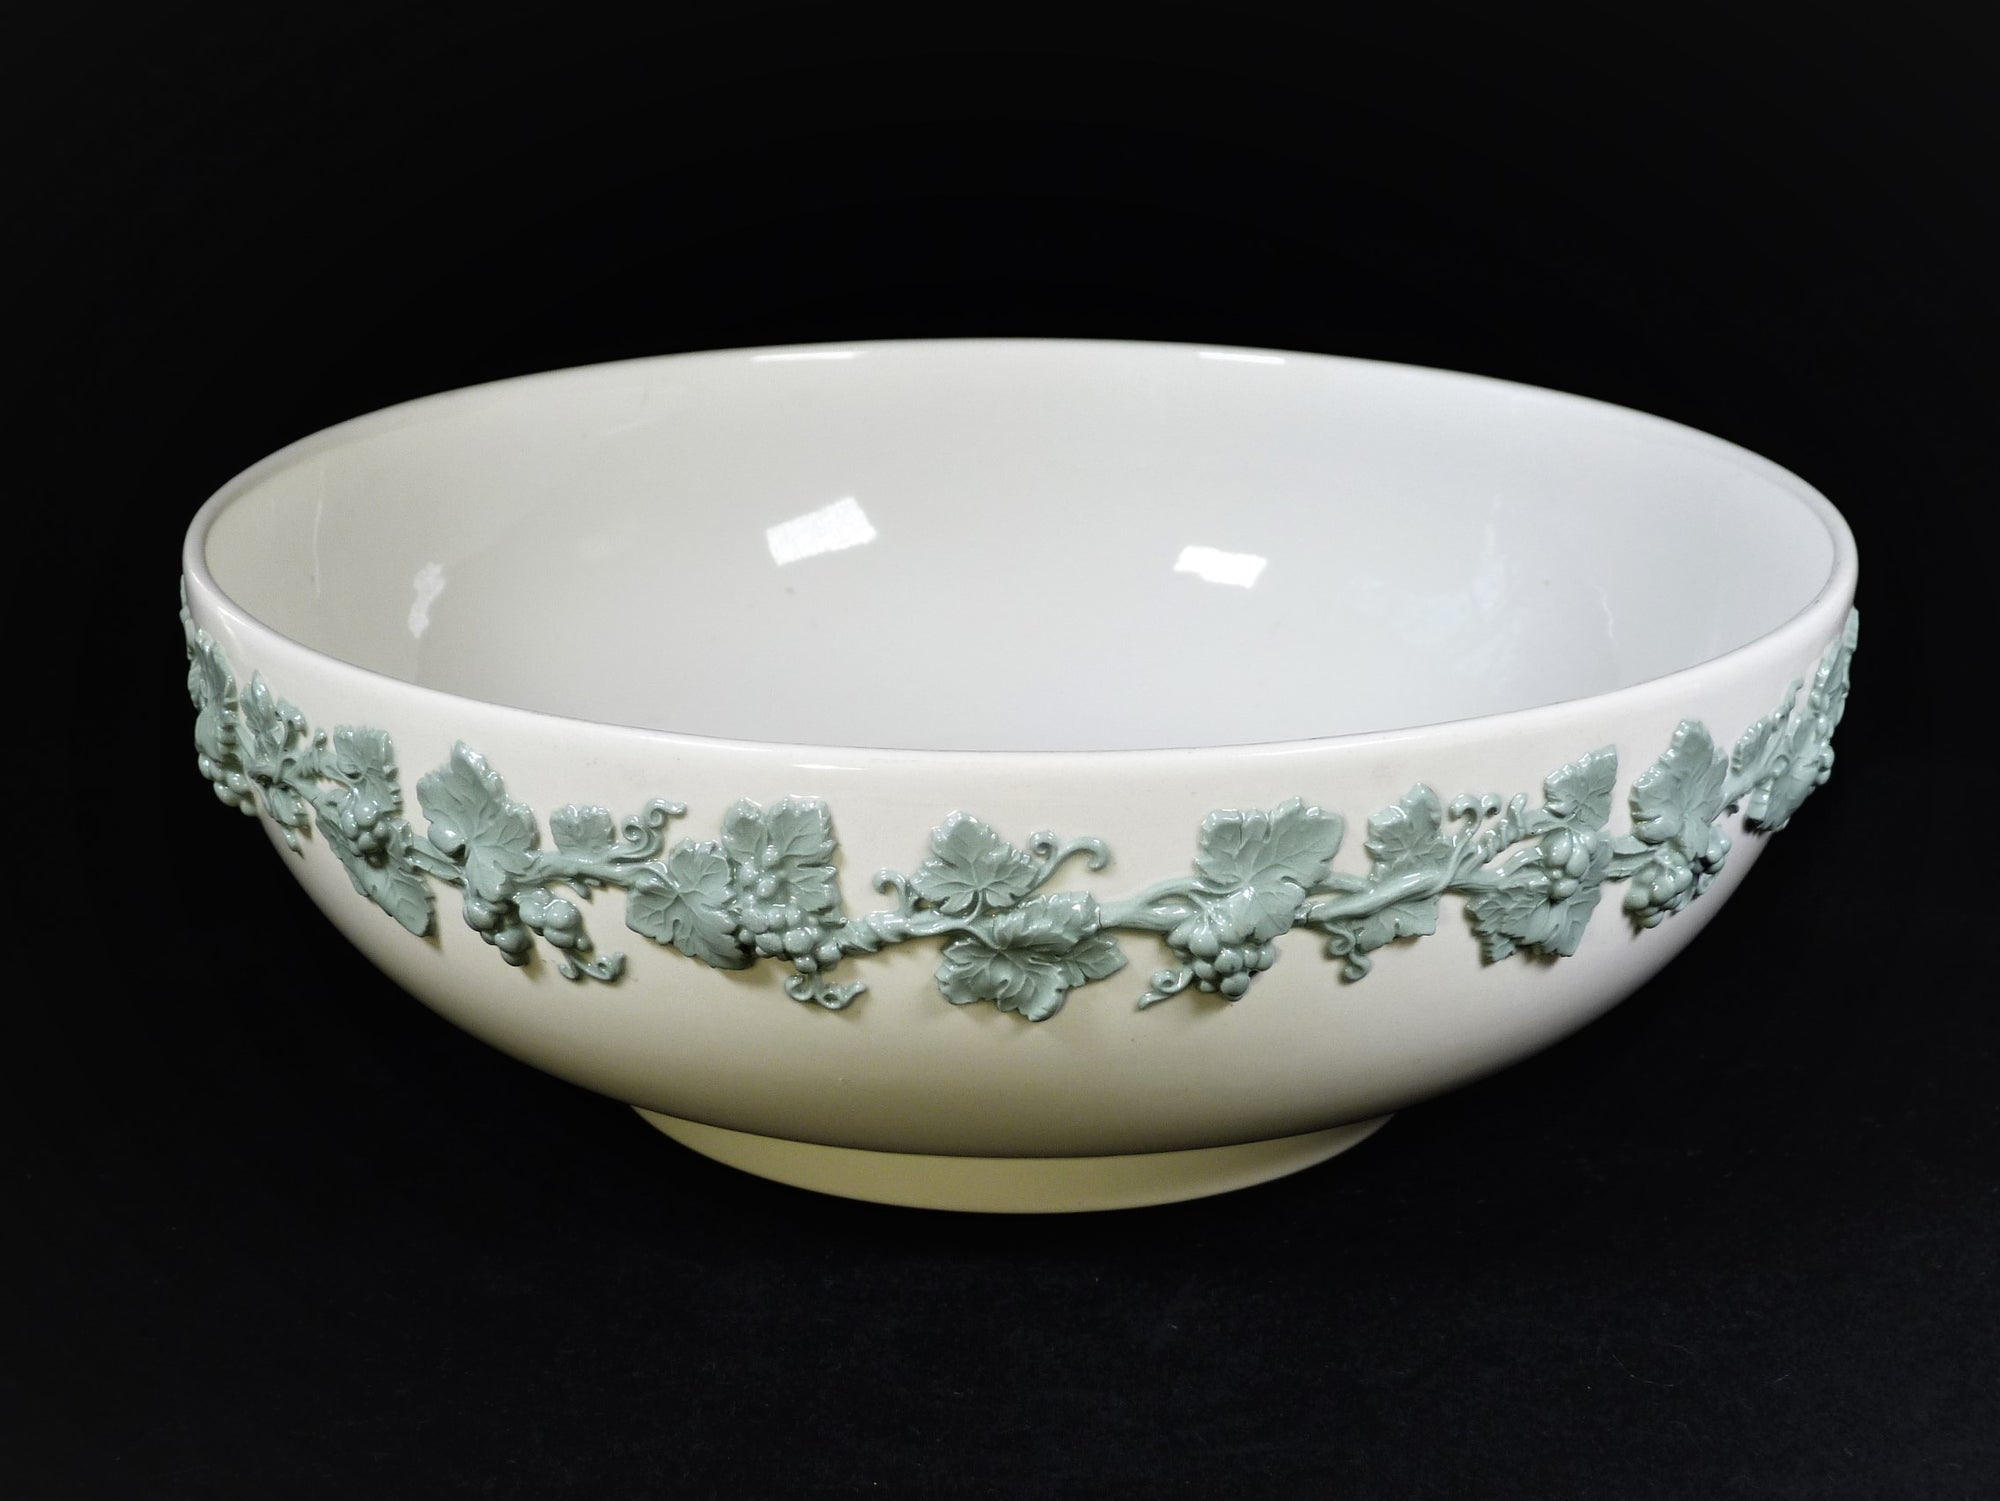 Wedgwood Queen's Ware Bowl, Cream and Celadon Green Bowl